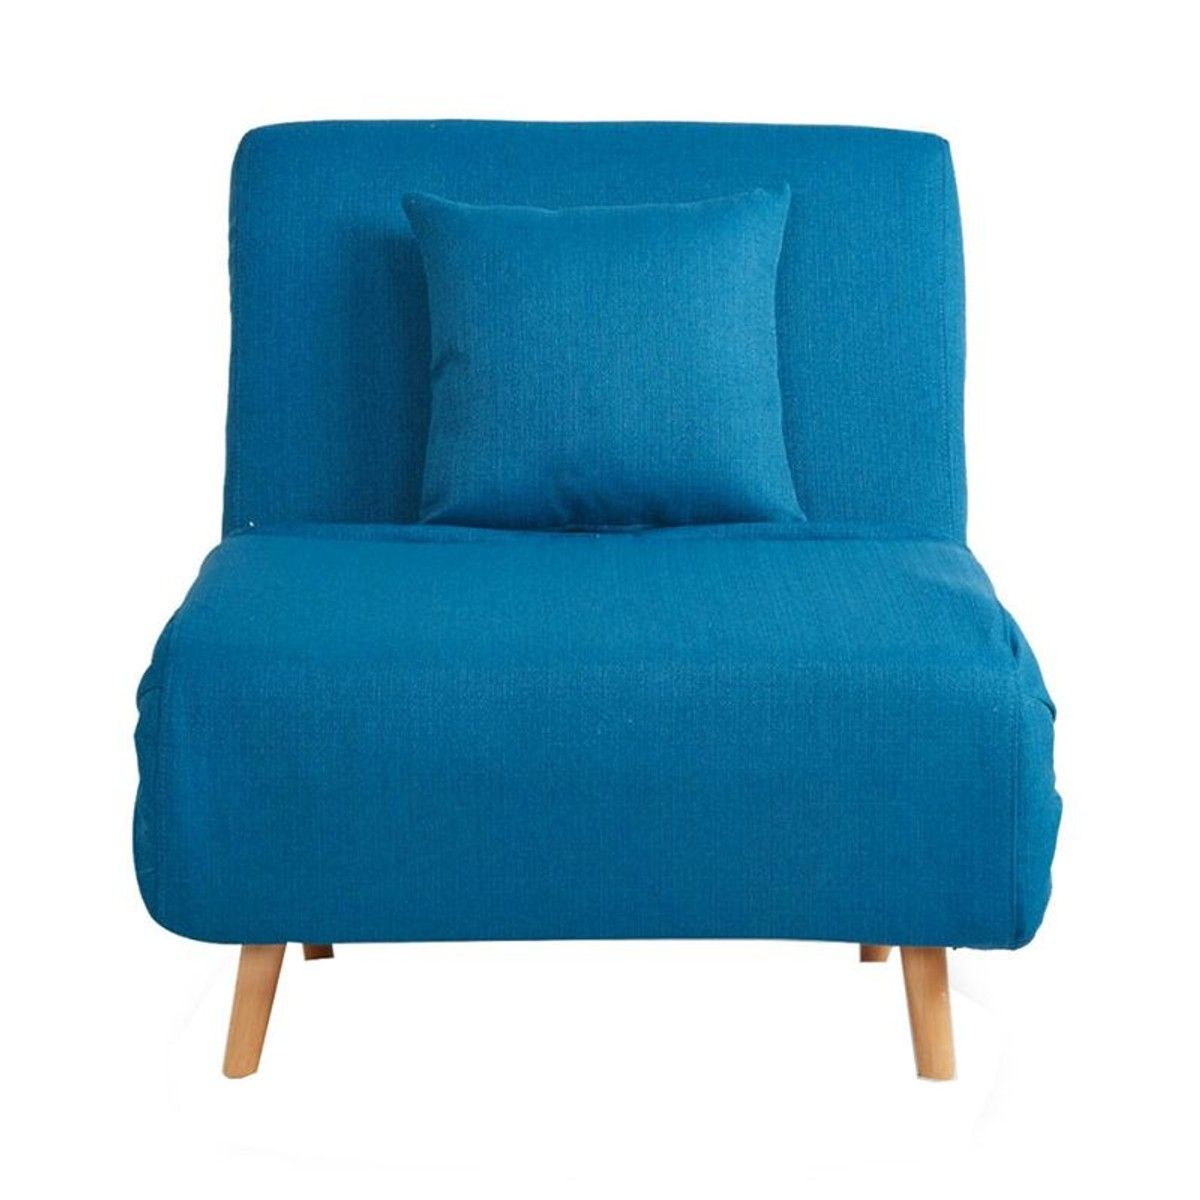 Adron Fauteuil Convertible Lit 1 Place Taille 1 Place Fauteuil Convertible Fauteuil Et Mobilier De Salon